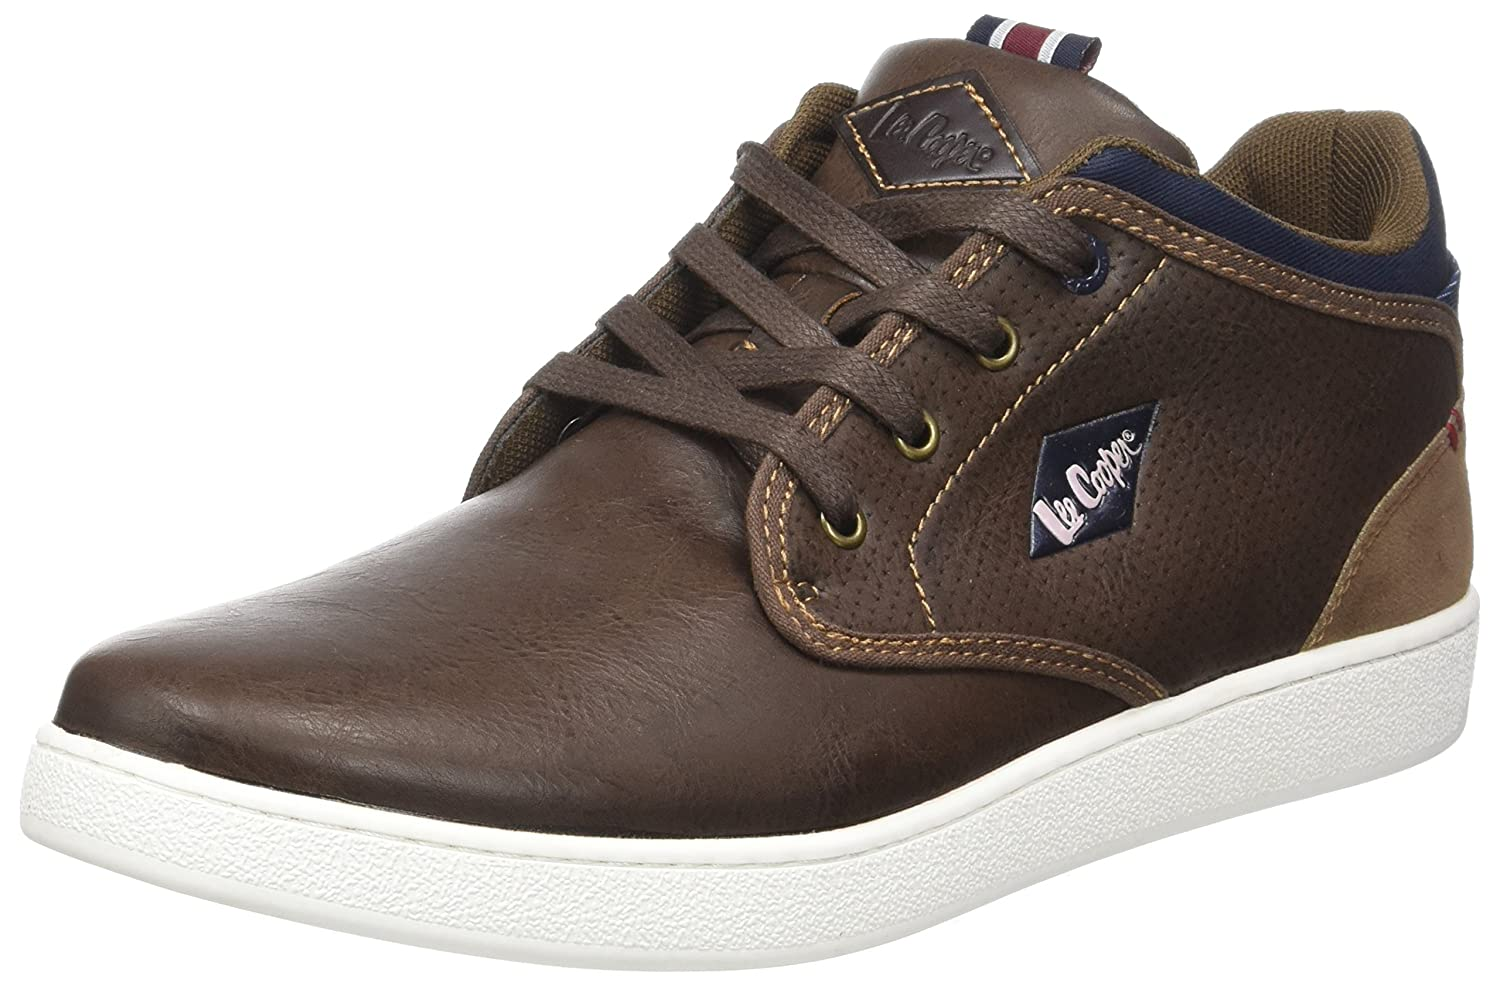 Lee Cooper Bays, Baskets Basses Homme